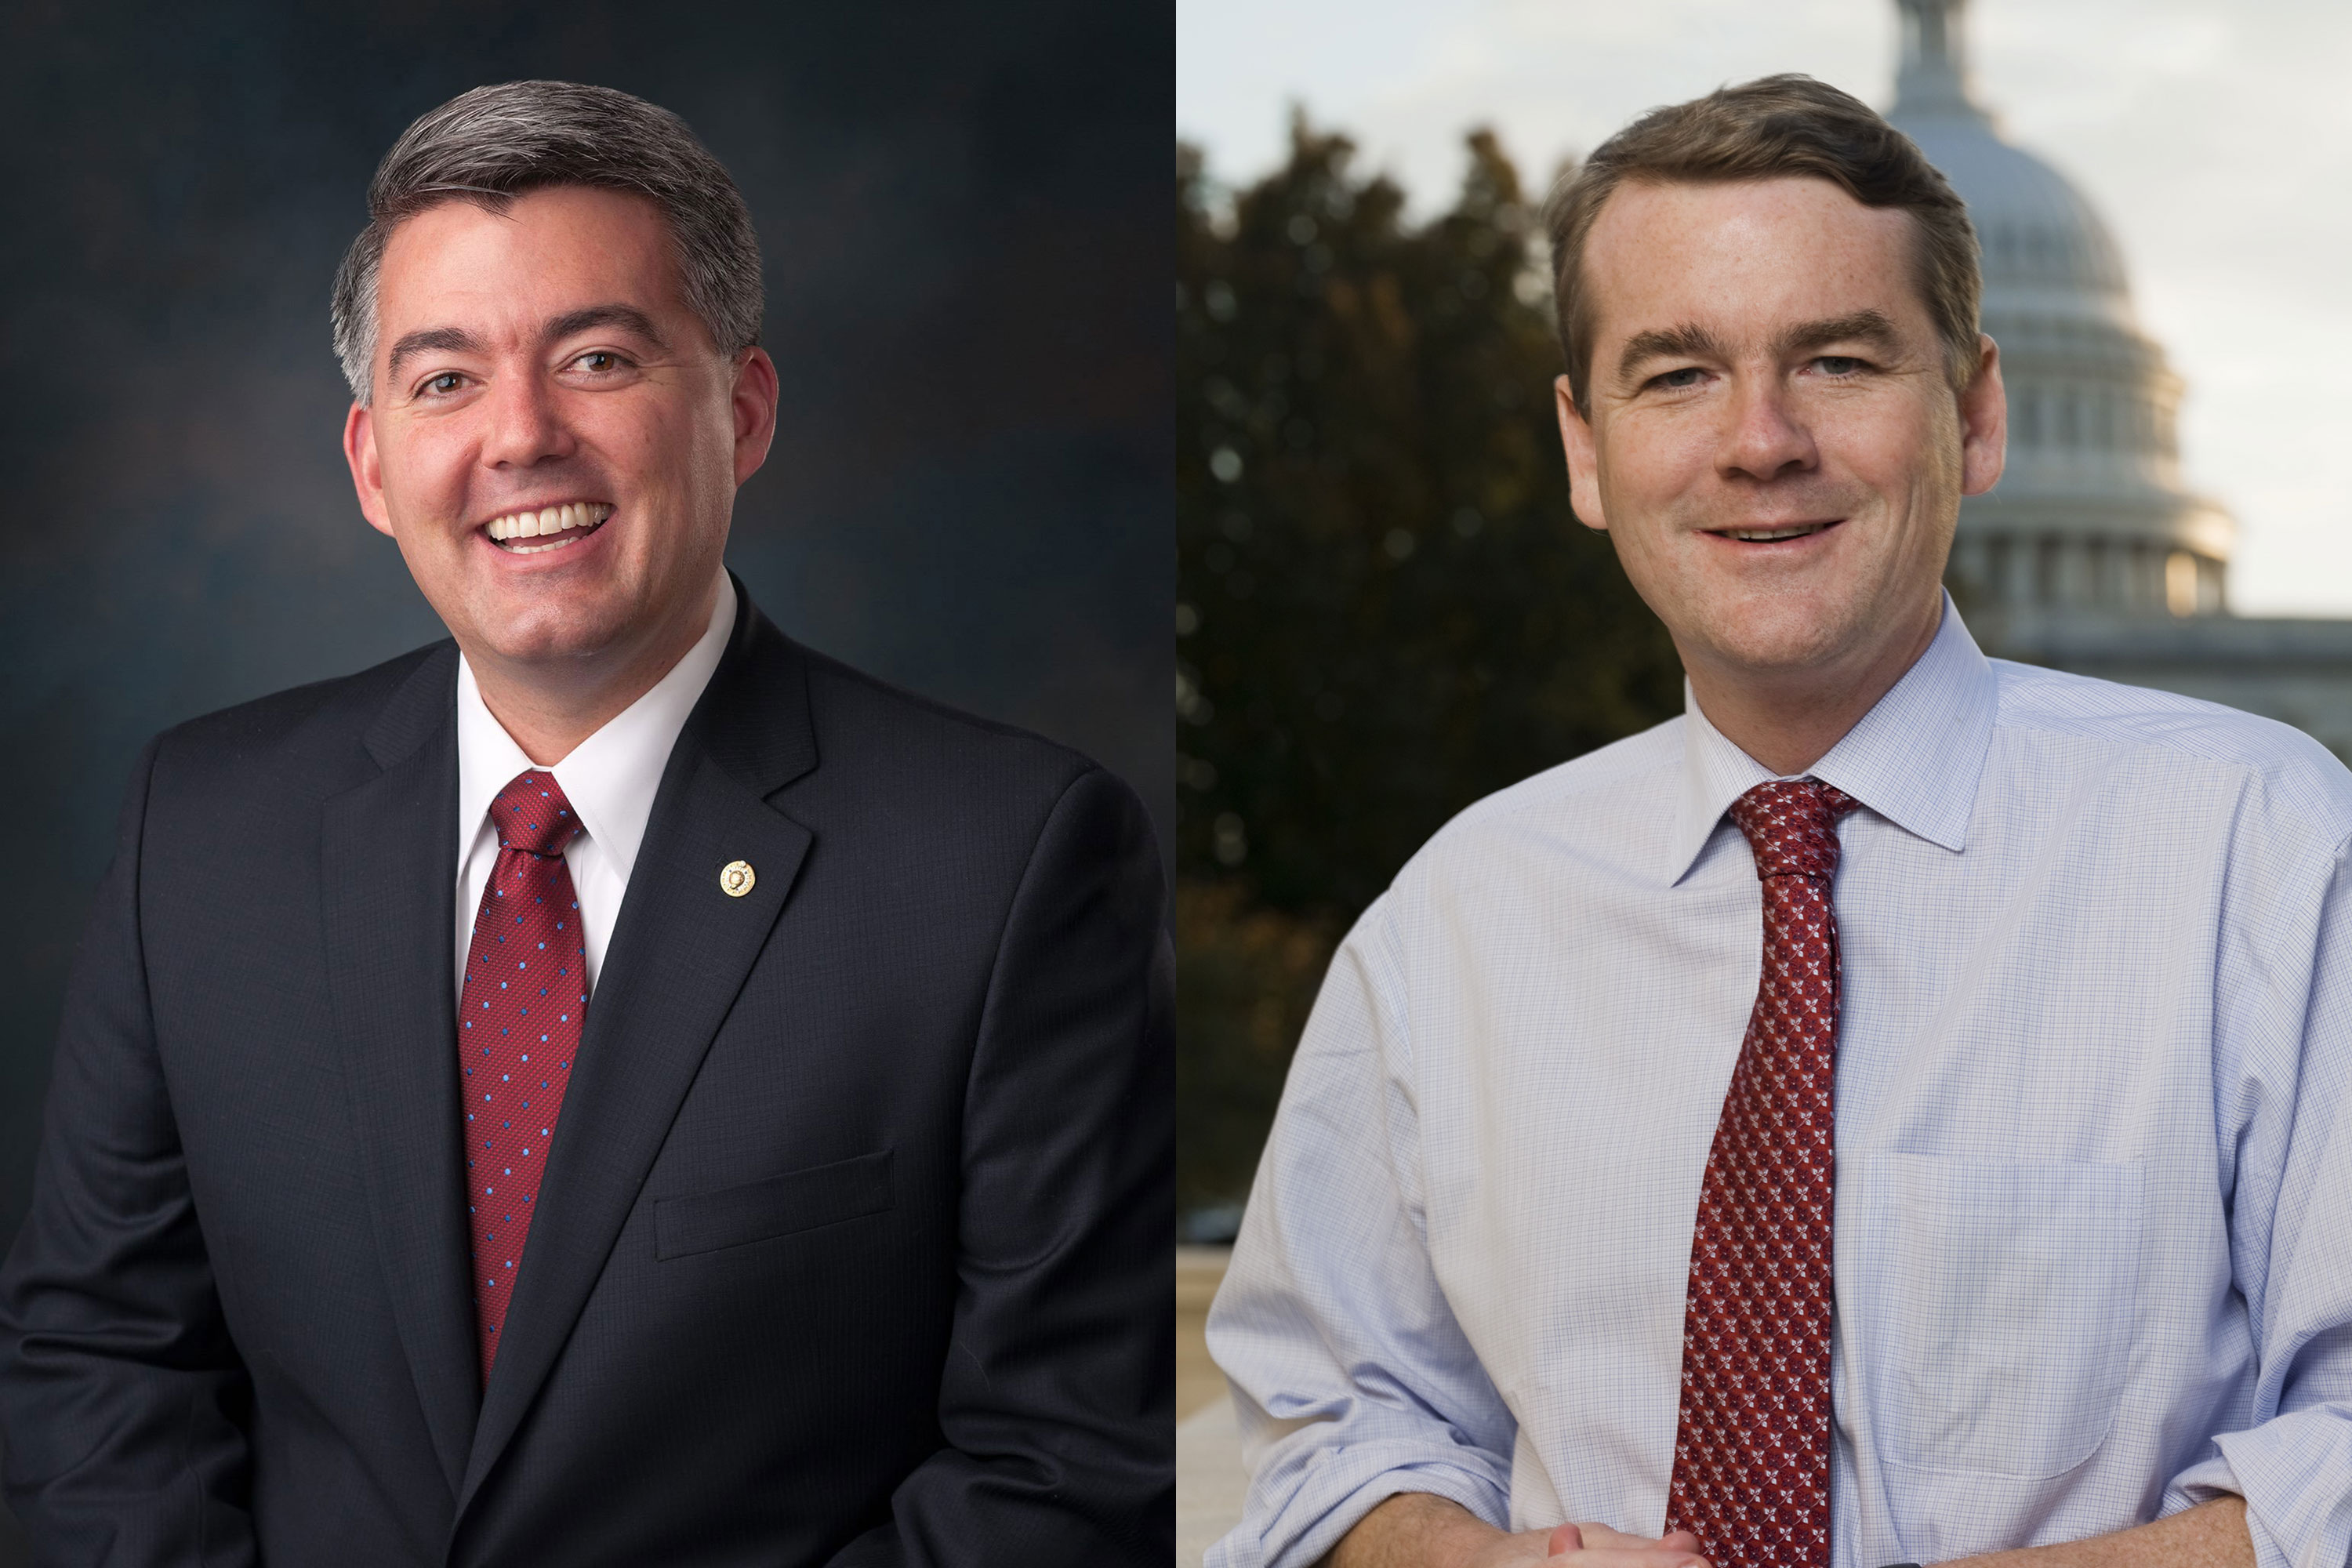 <p>Colorado's Senators, Republican Cory Gardner and Democrat Michael Bennet.</p>